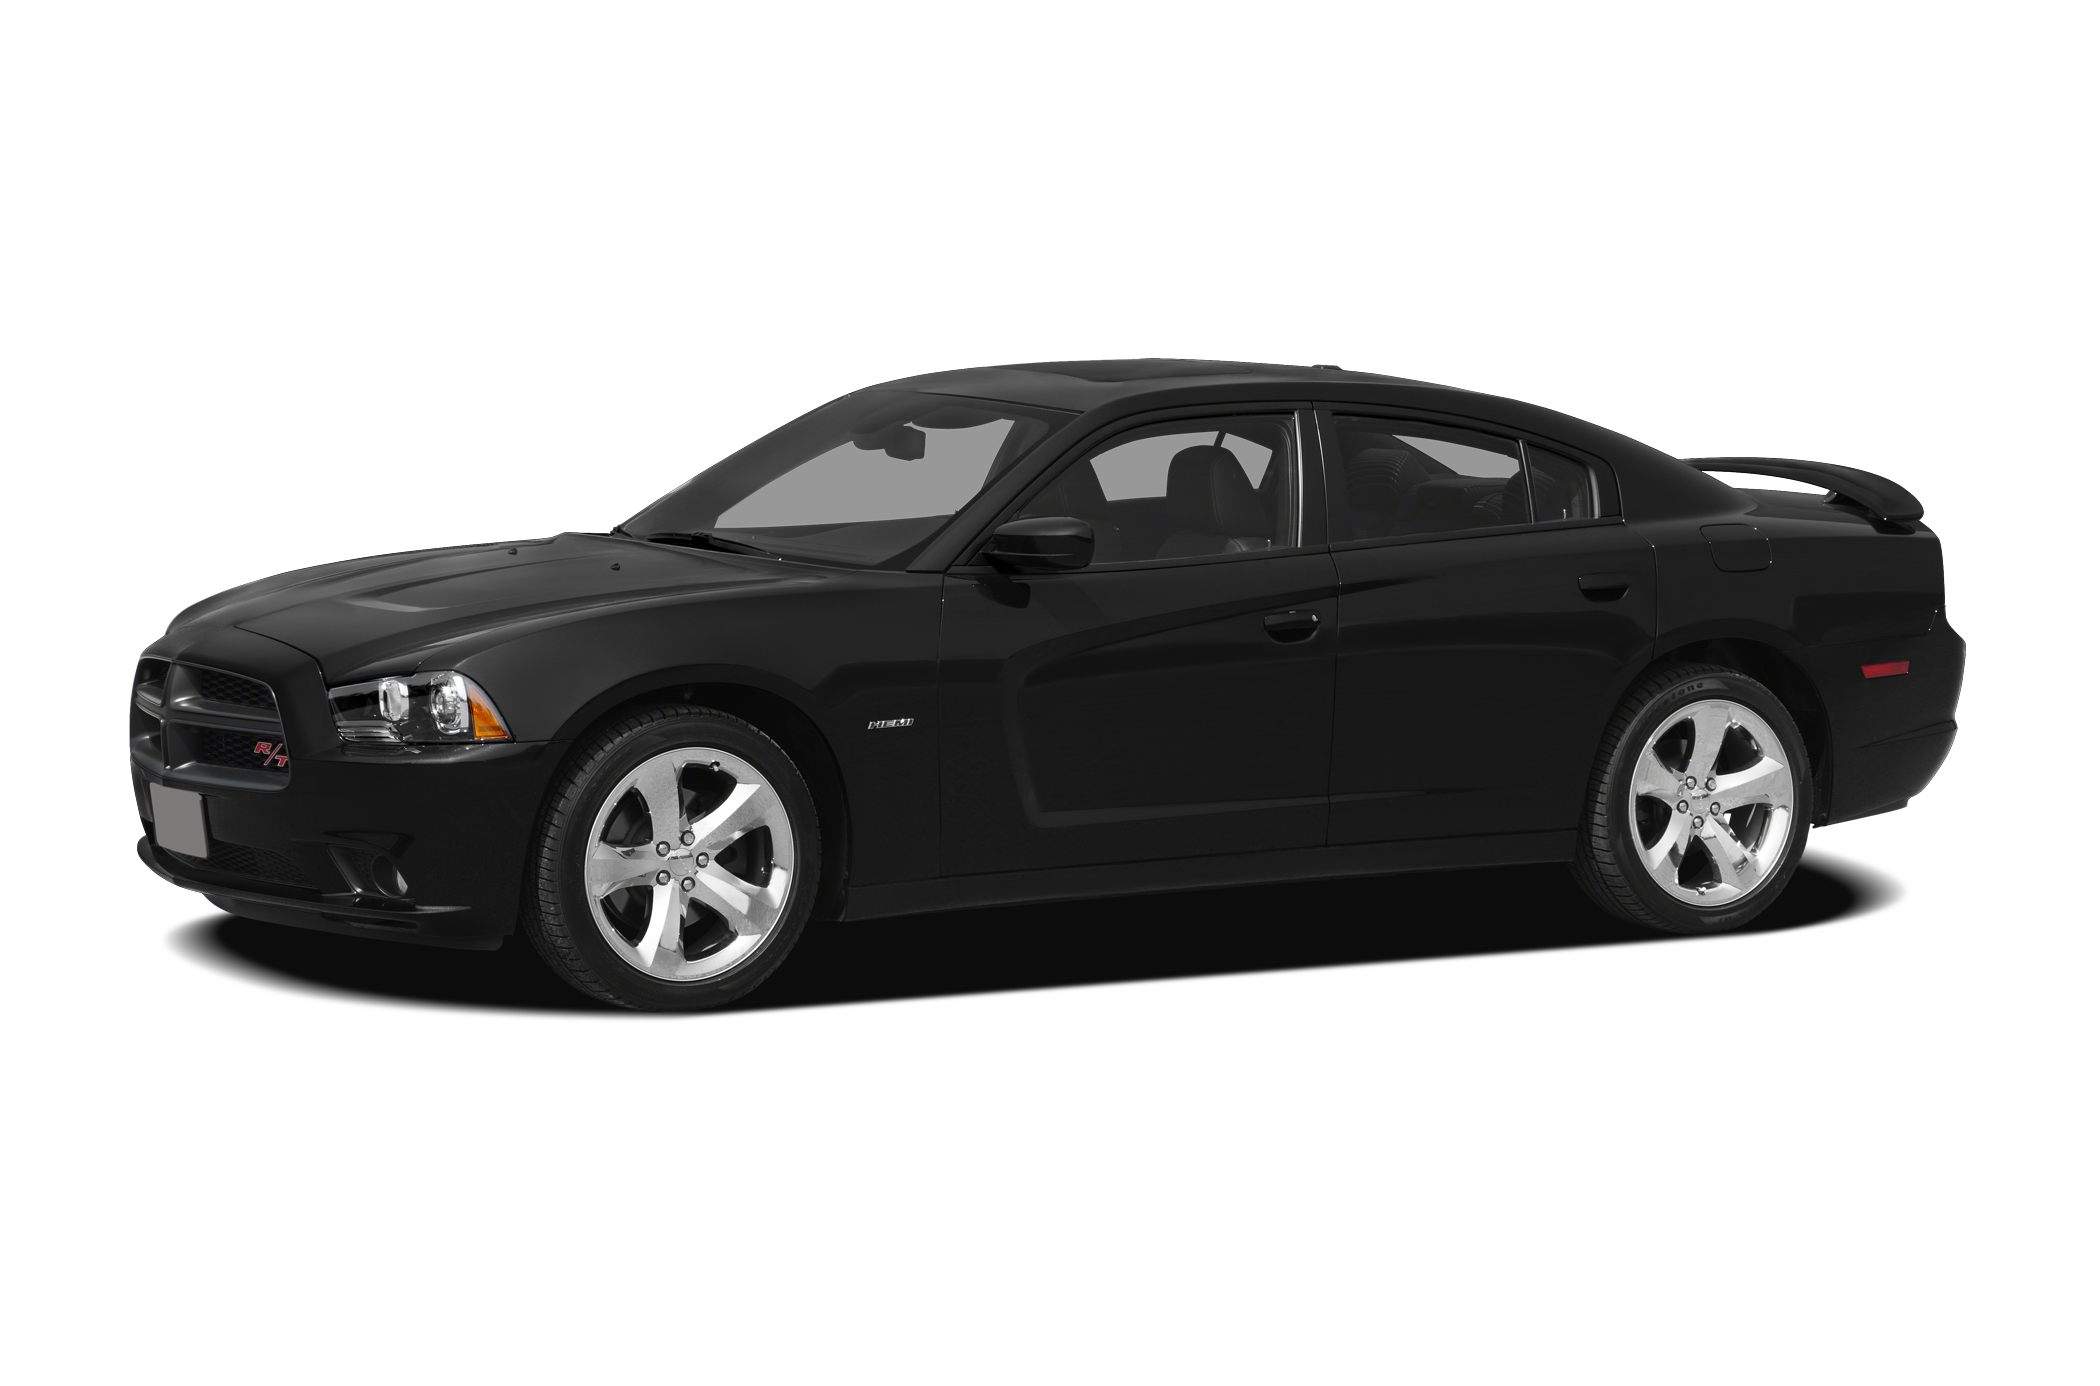 2011 Dodge Charger R/T Sedan for sale in Tacoma for $22,990 with 39,409 miles.